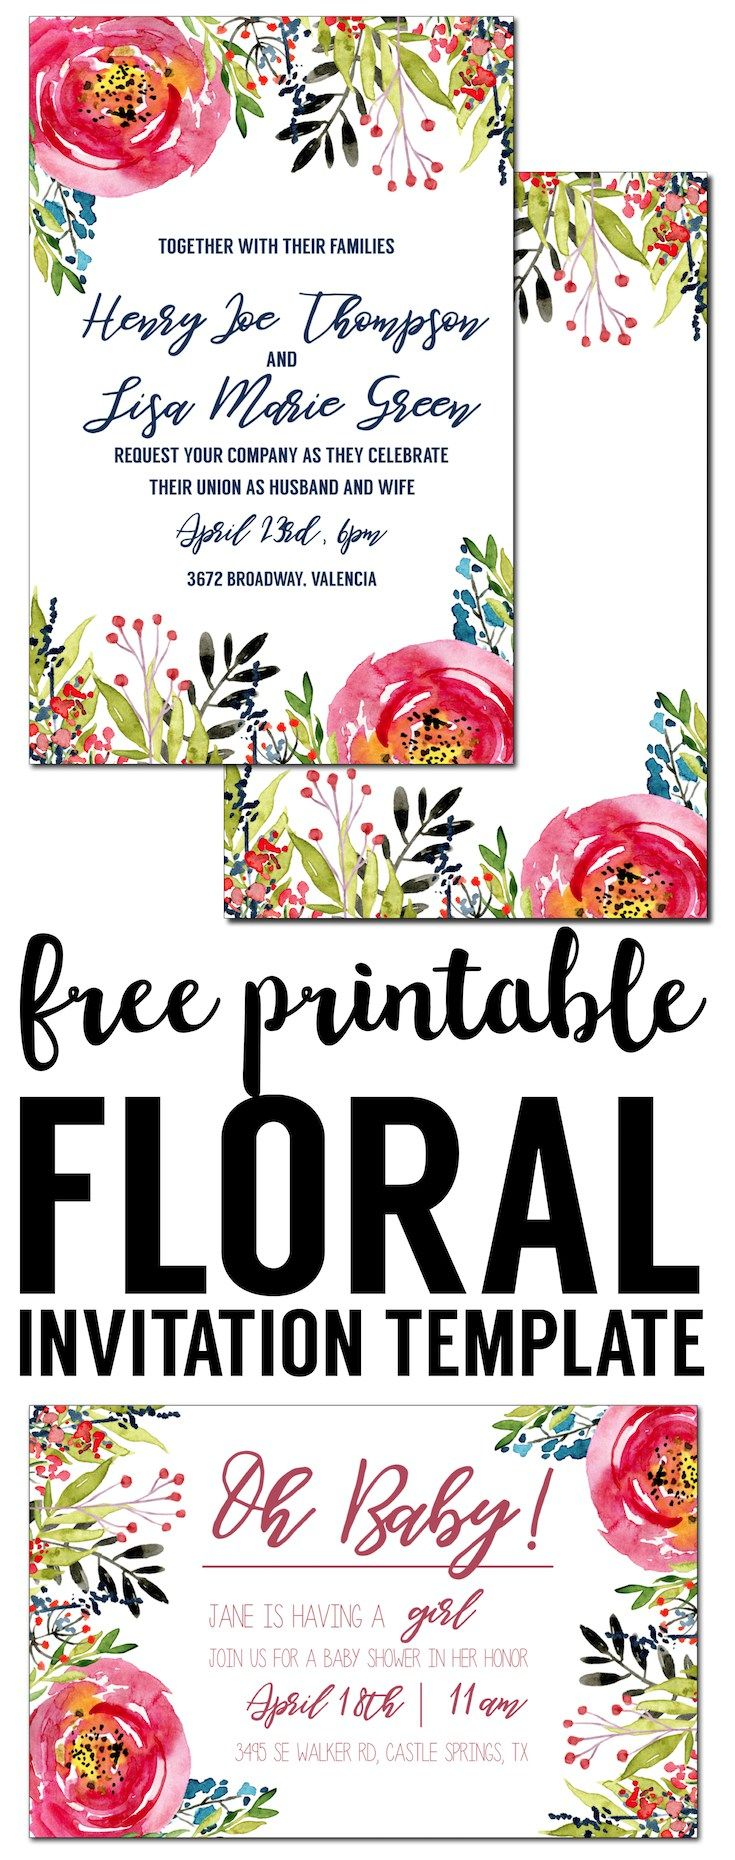 Printable gift vouchers template gift certificate templates free floral invitation template free printable free invitation template for a birthday party wedding yelopaper Image collections